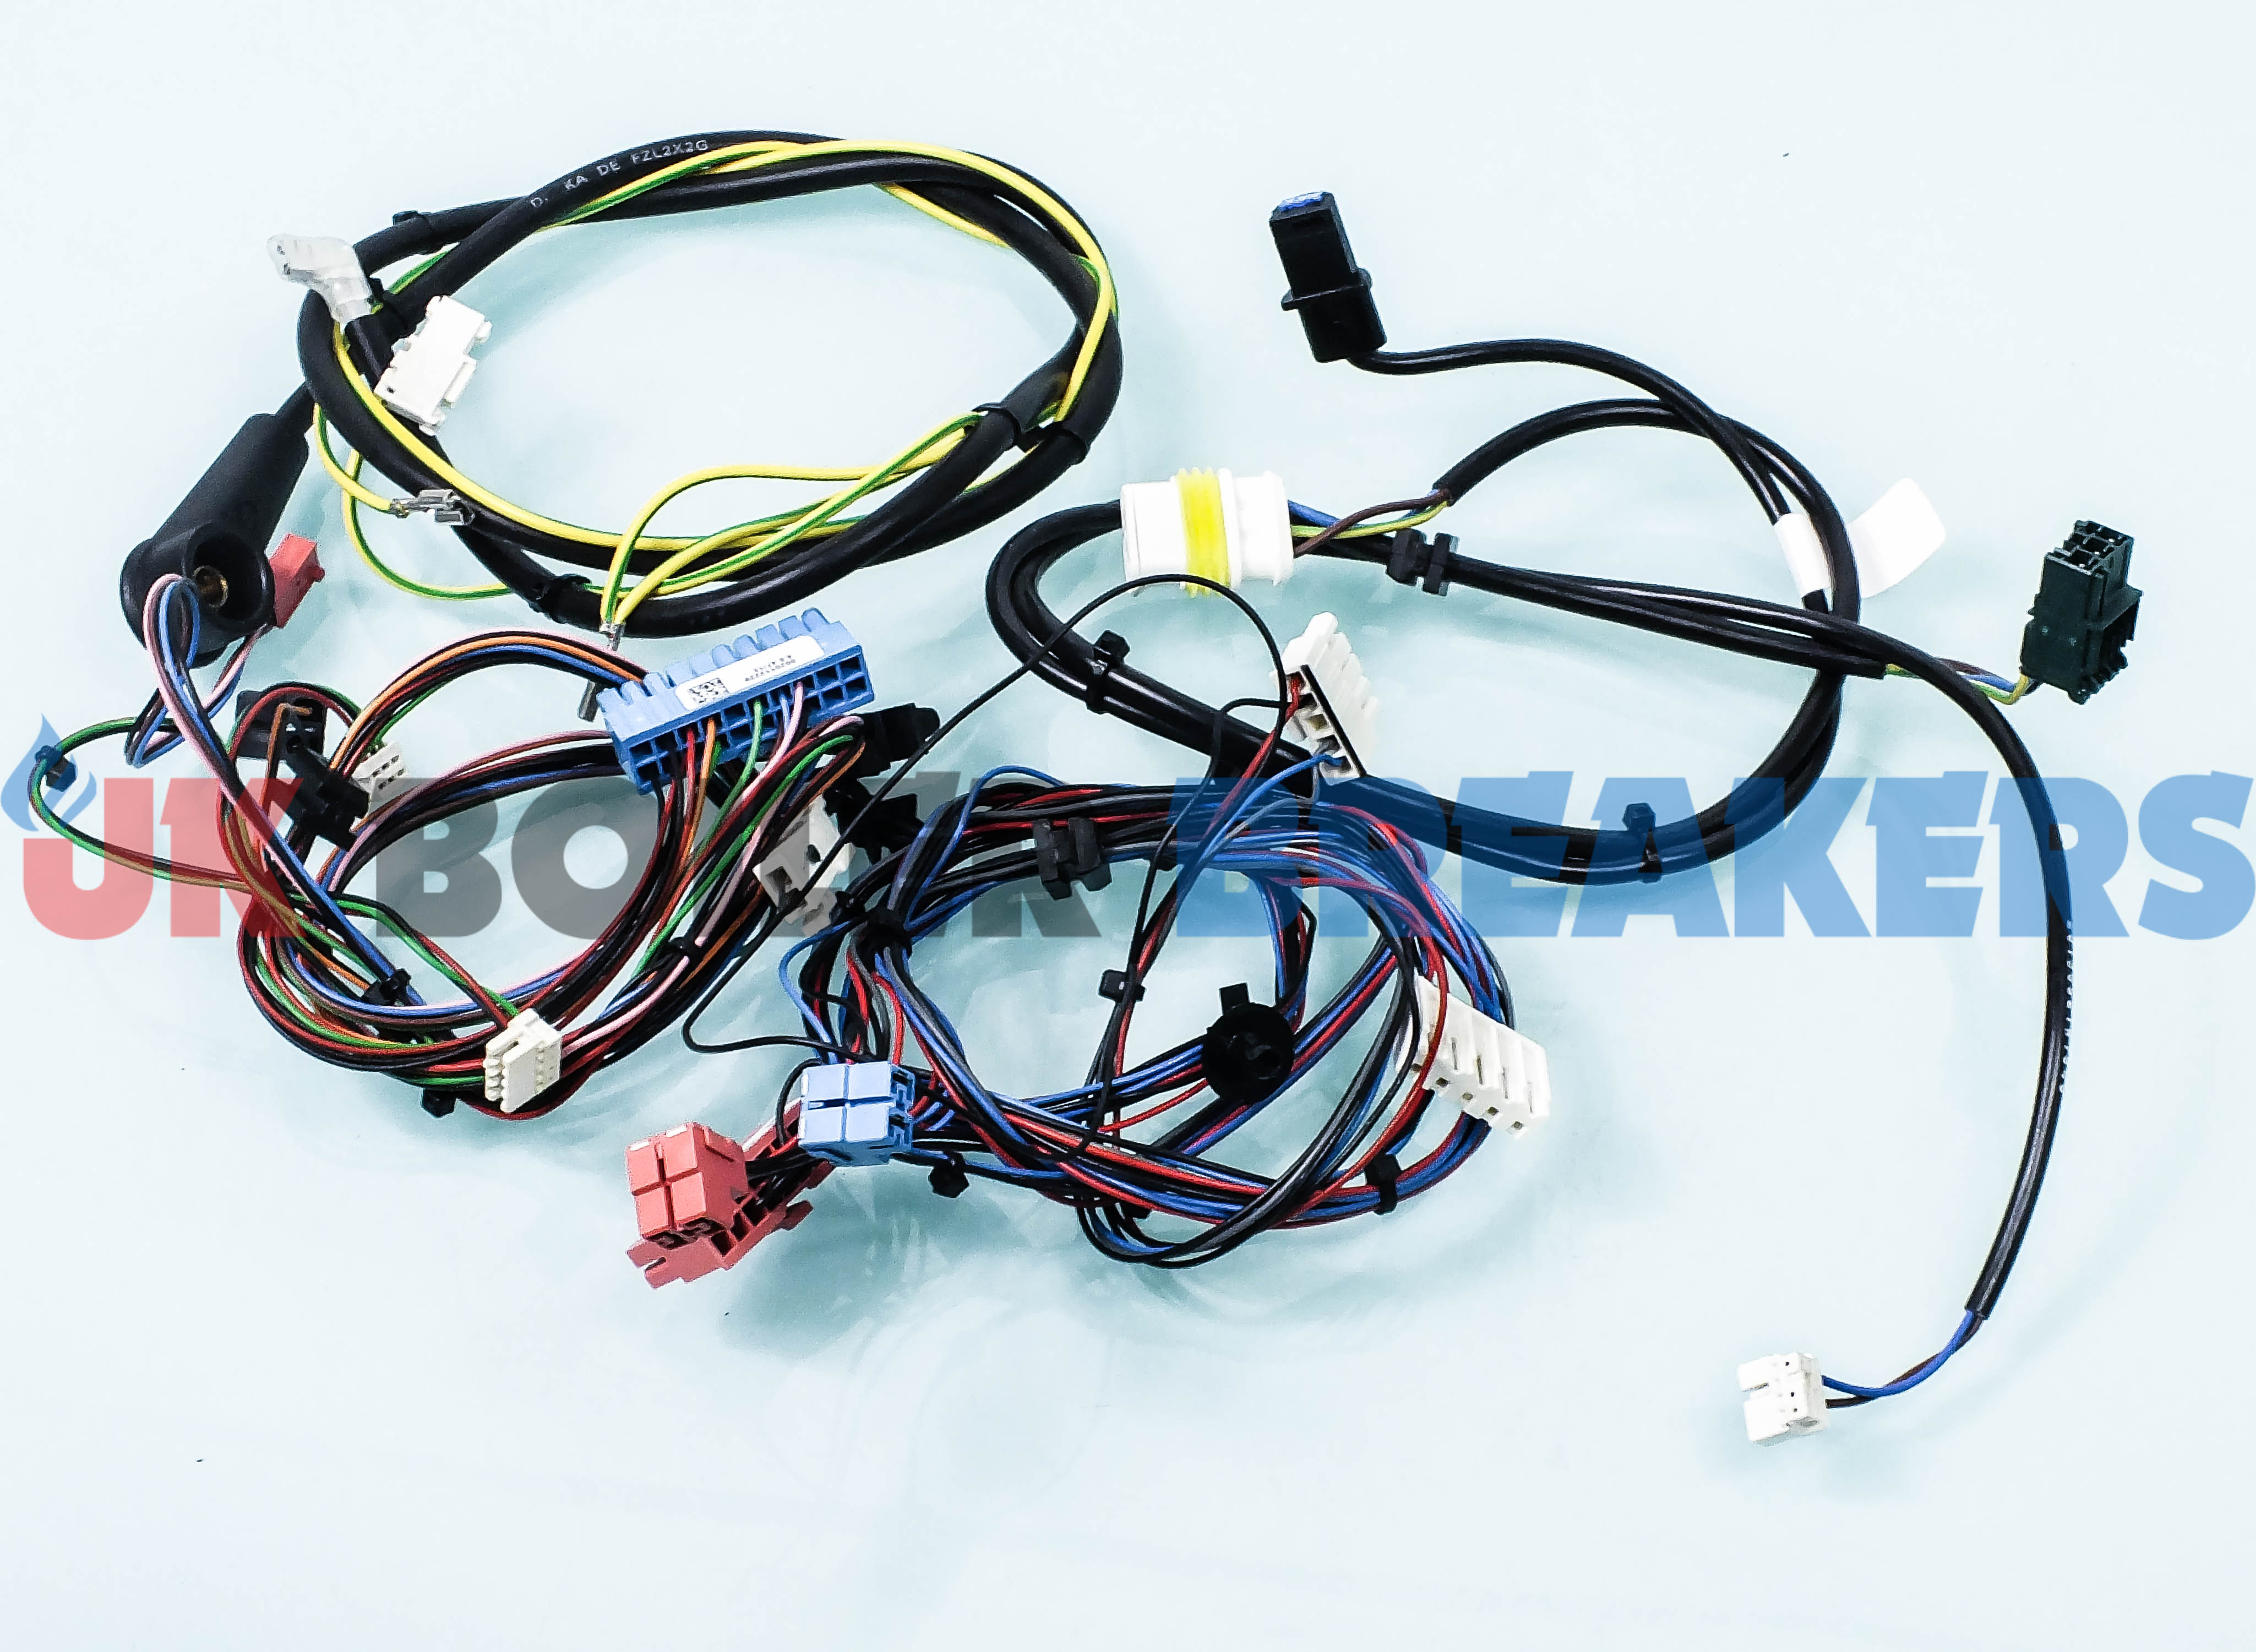 Vaillant Mixed Wires and Cable GC- 47-044-54 - UK BoilerBreakers